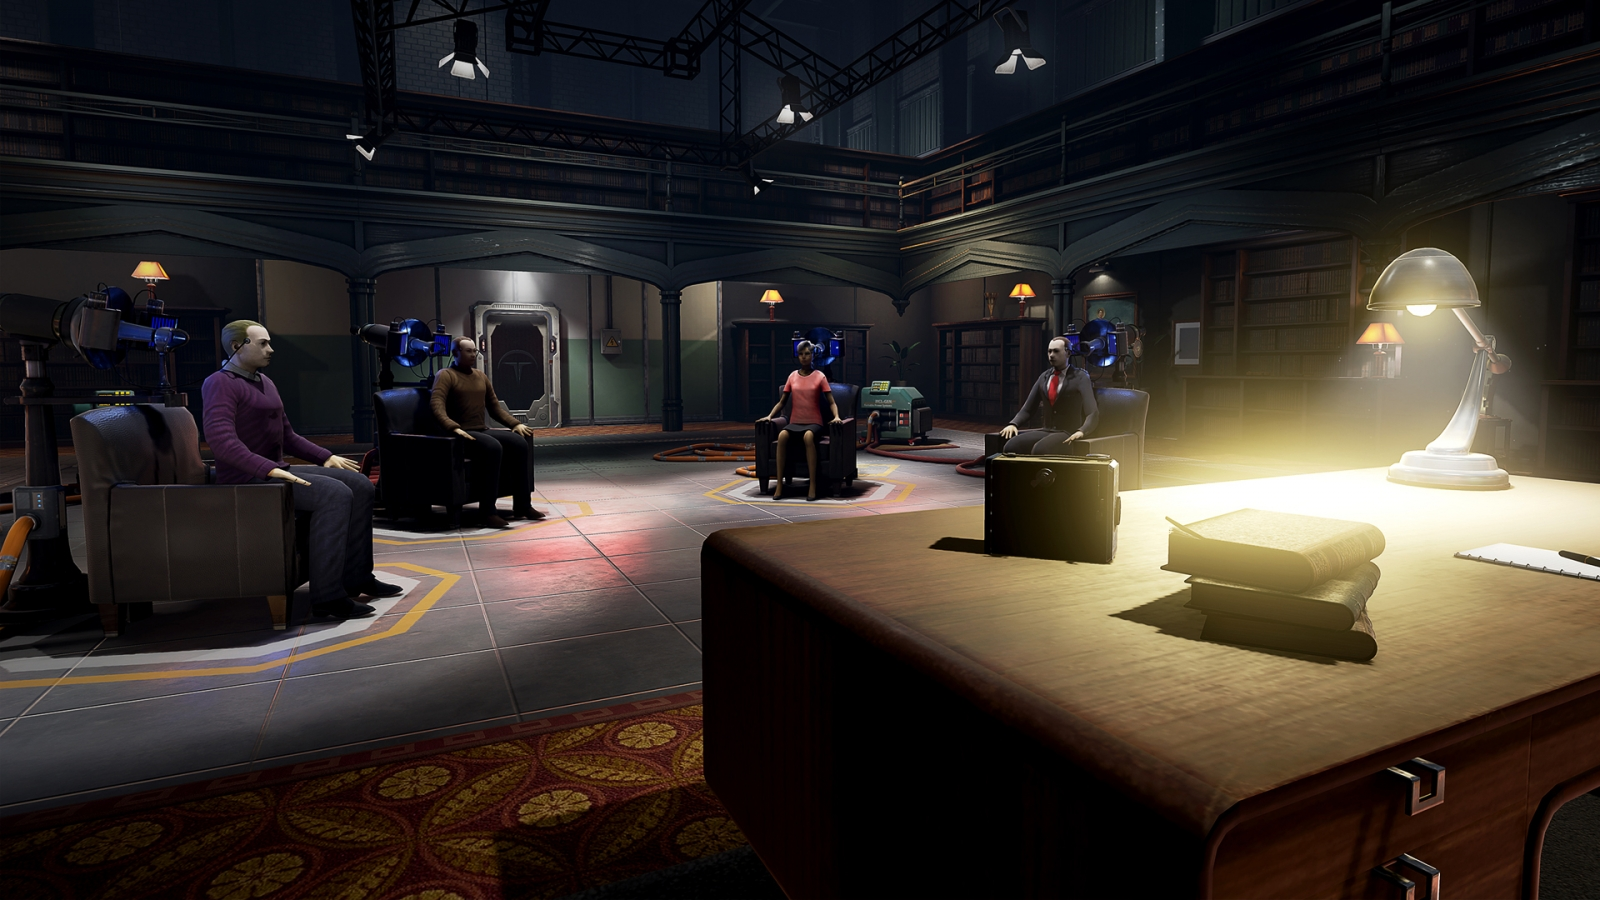 Ndreams The Assembly Developer On Virtual Reality Video Games